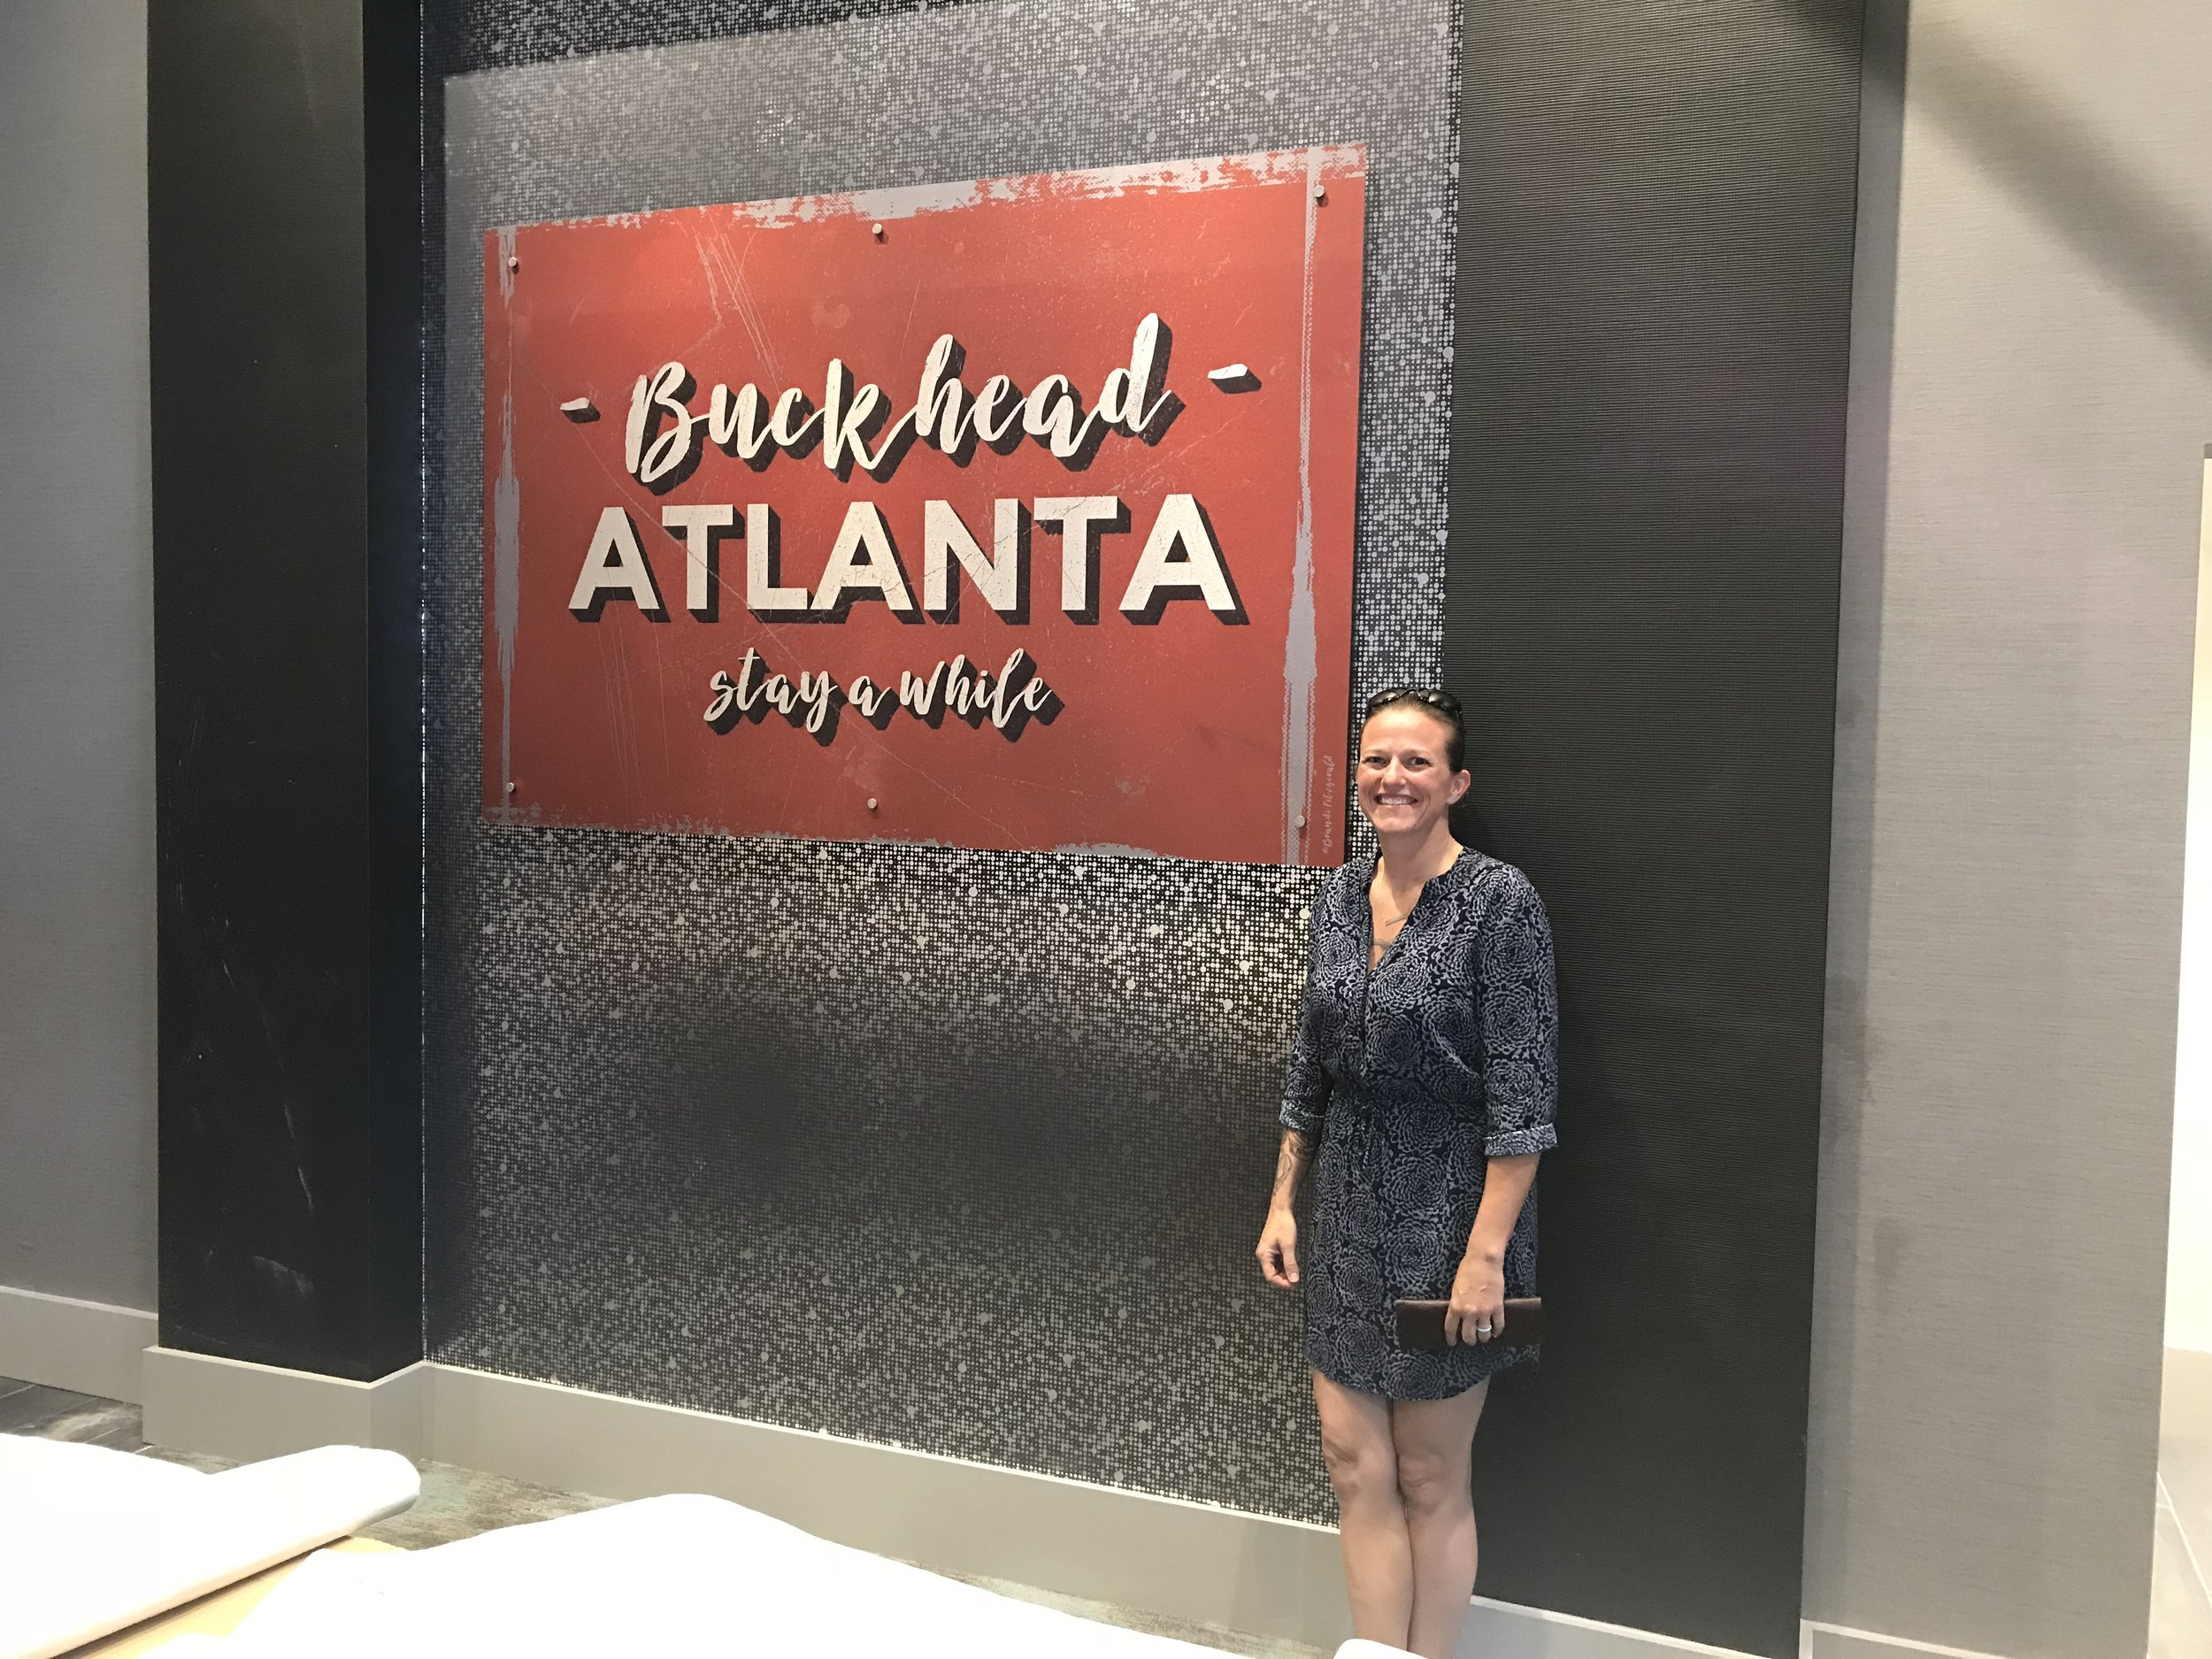 Hampton Inn - Buckhead, Atlanta - Excited to announce that two pieces of my artwork were chosen to adorn the walls of the new Hampton Inn - Buckhead. This piece here is 4'x7' and lives behind the reception desk.